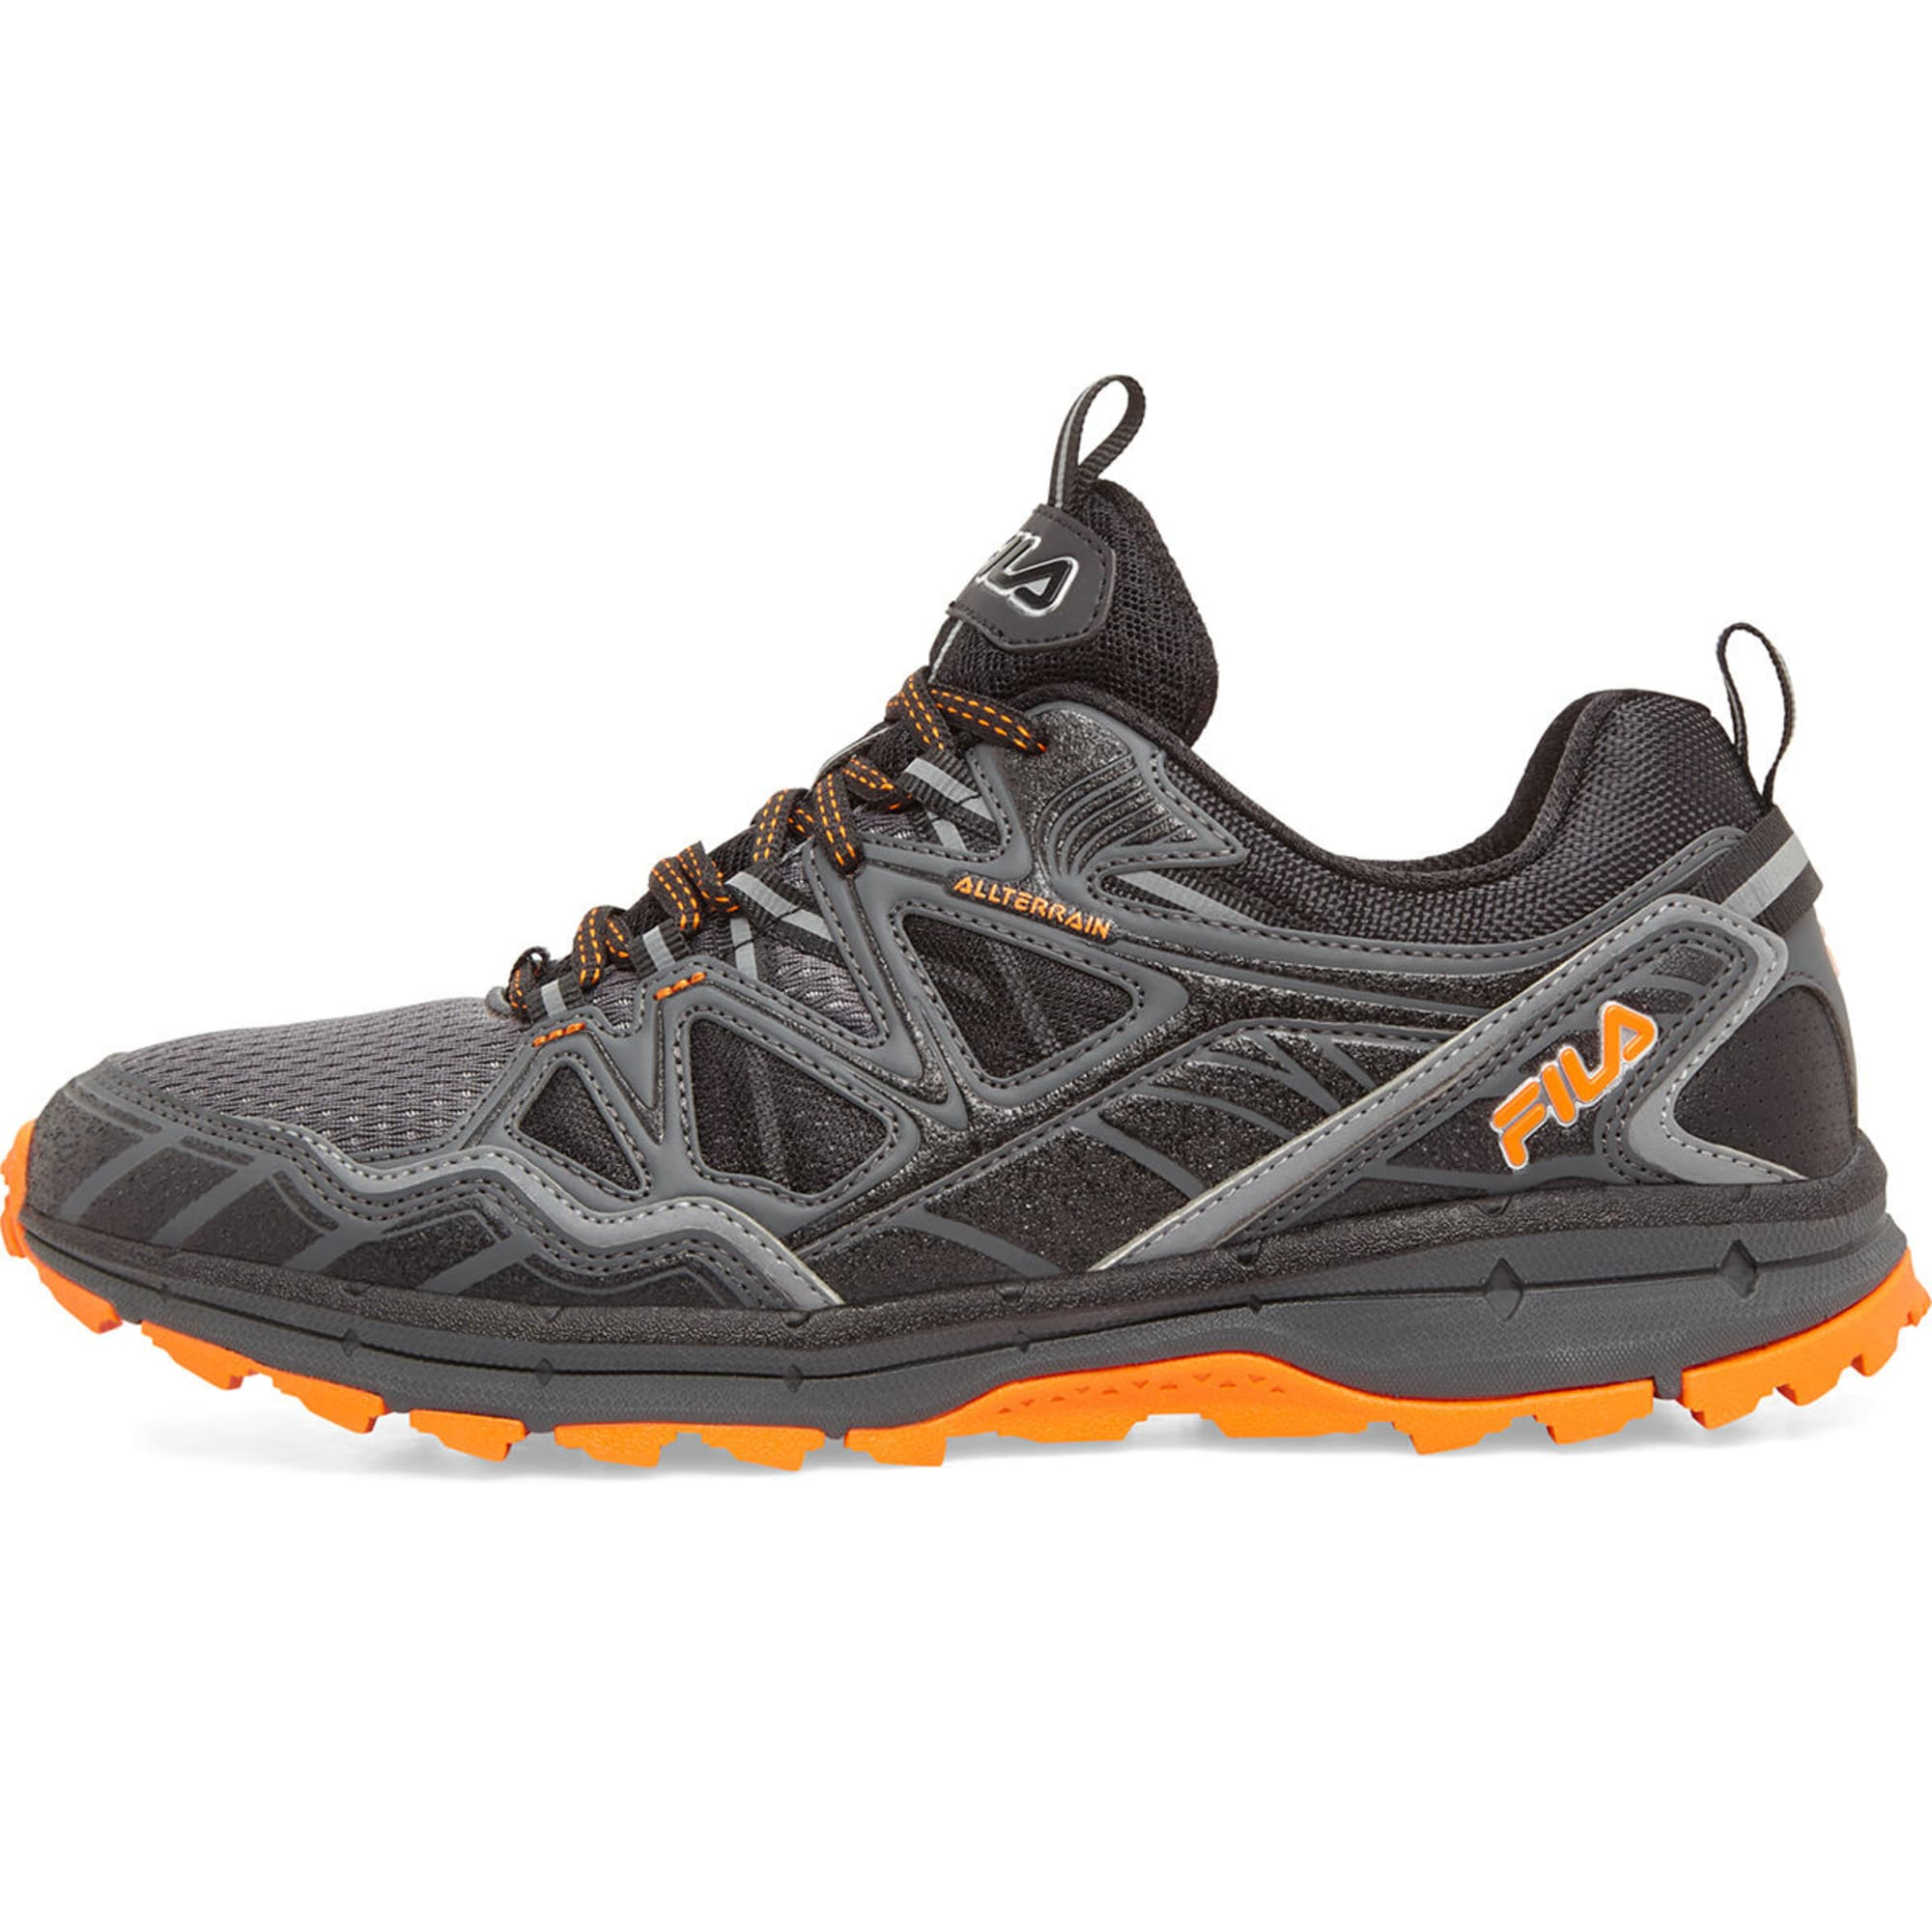 Memory TKO TR 5.0 Trail Running Shoes